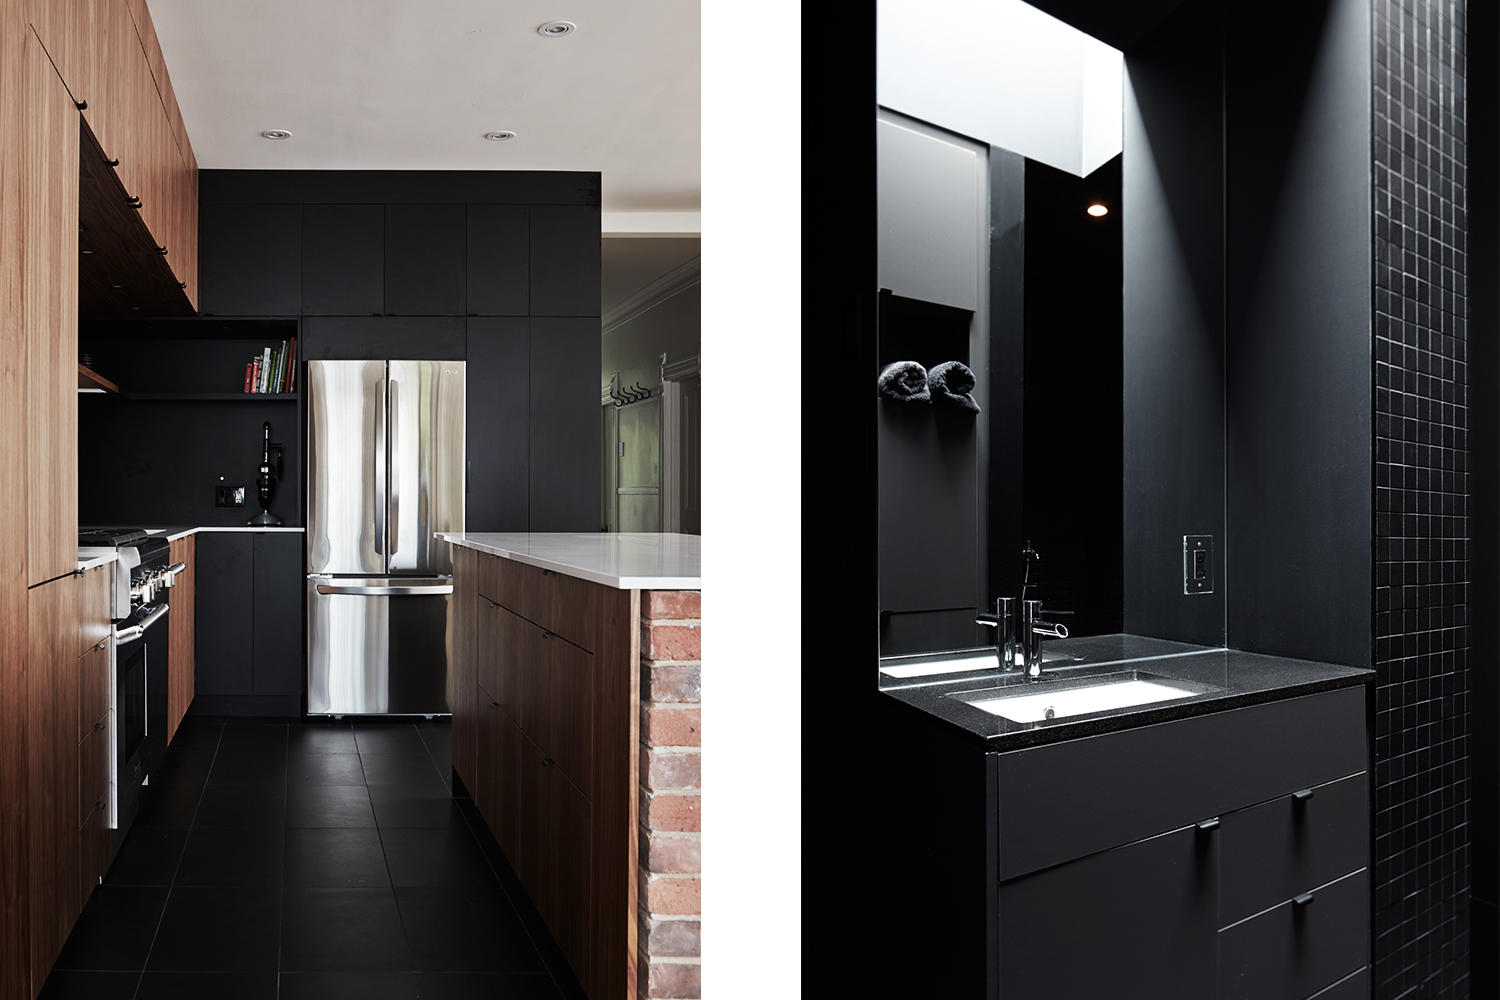 View of the kitchen island finished in walnut with quartz countertop, leaning on a small red brick wall. Another view of the bathroom made of black mosaics with black vanity and skylights